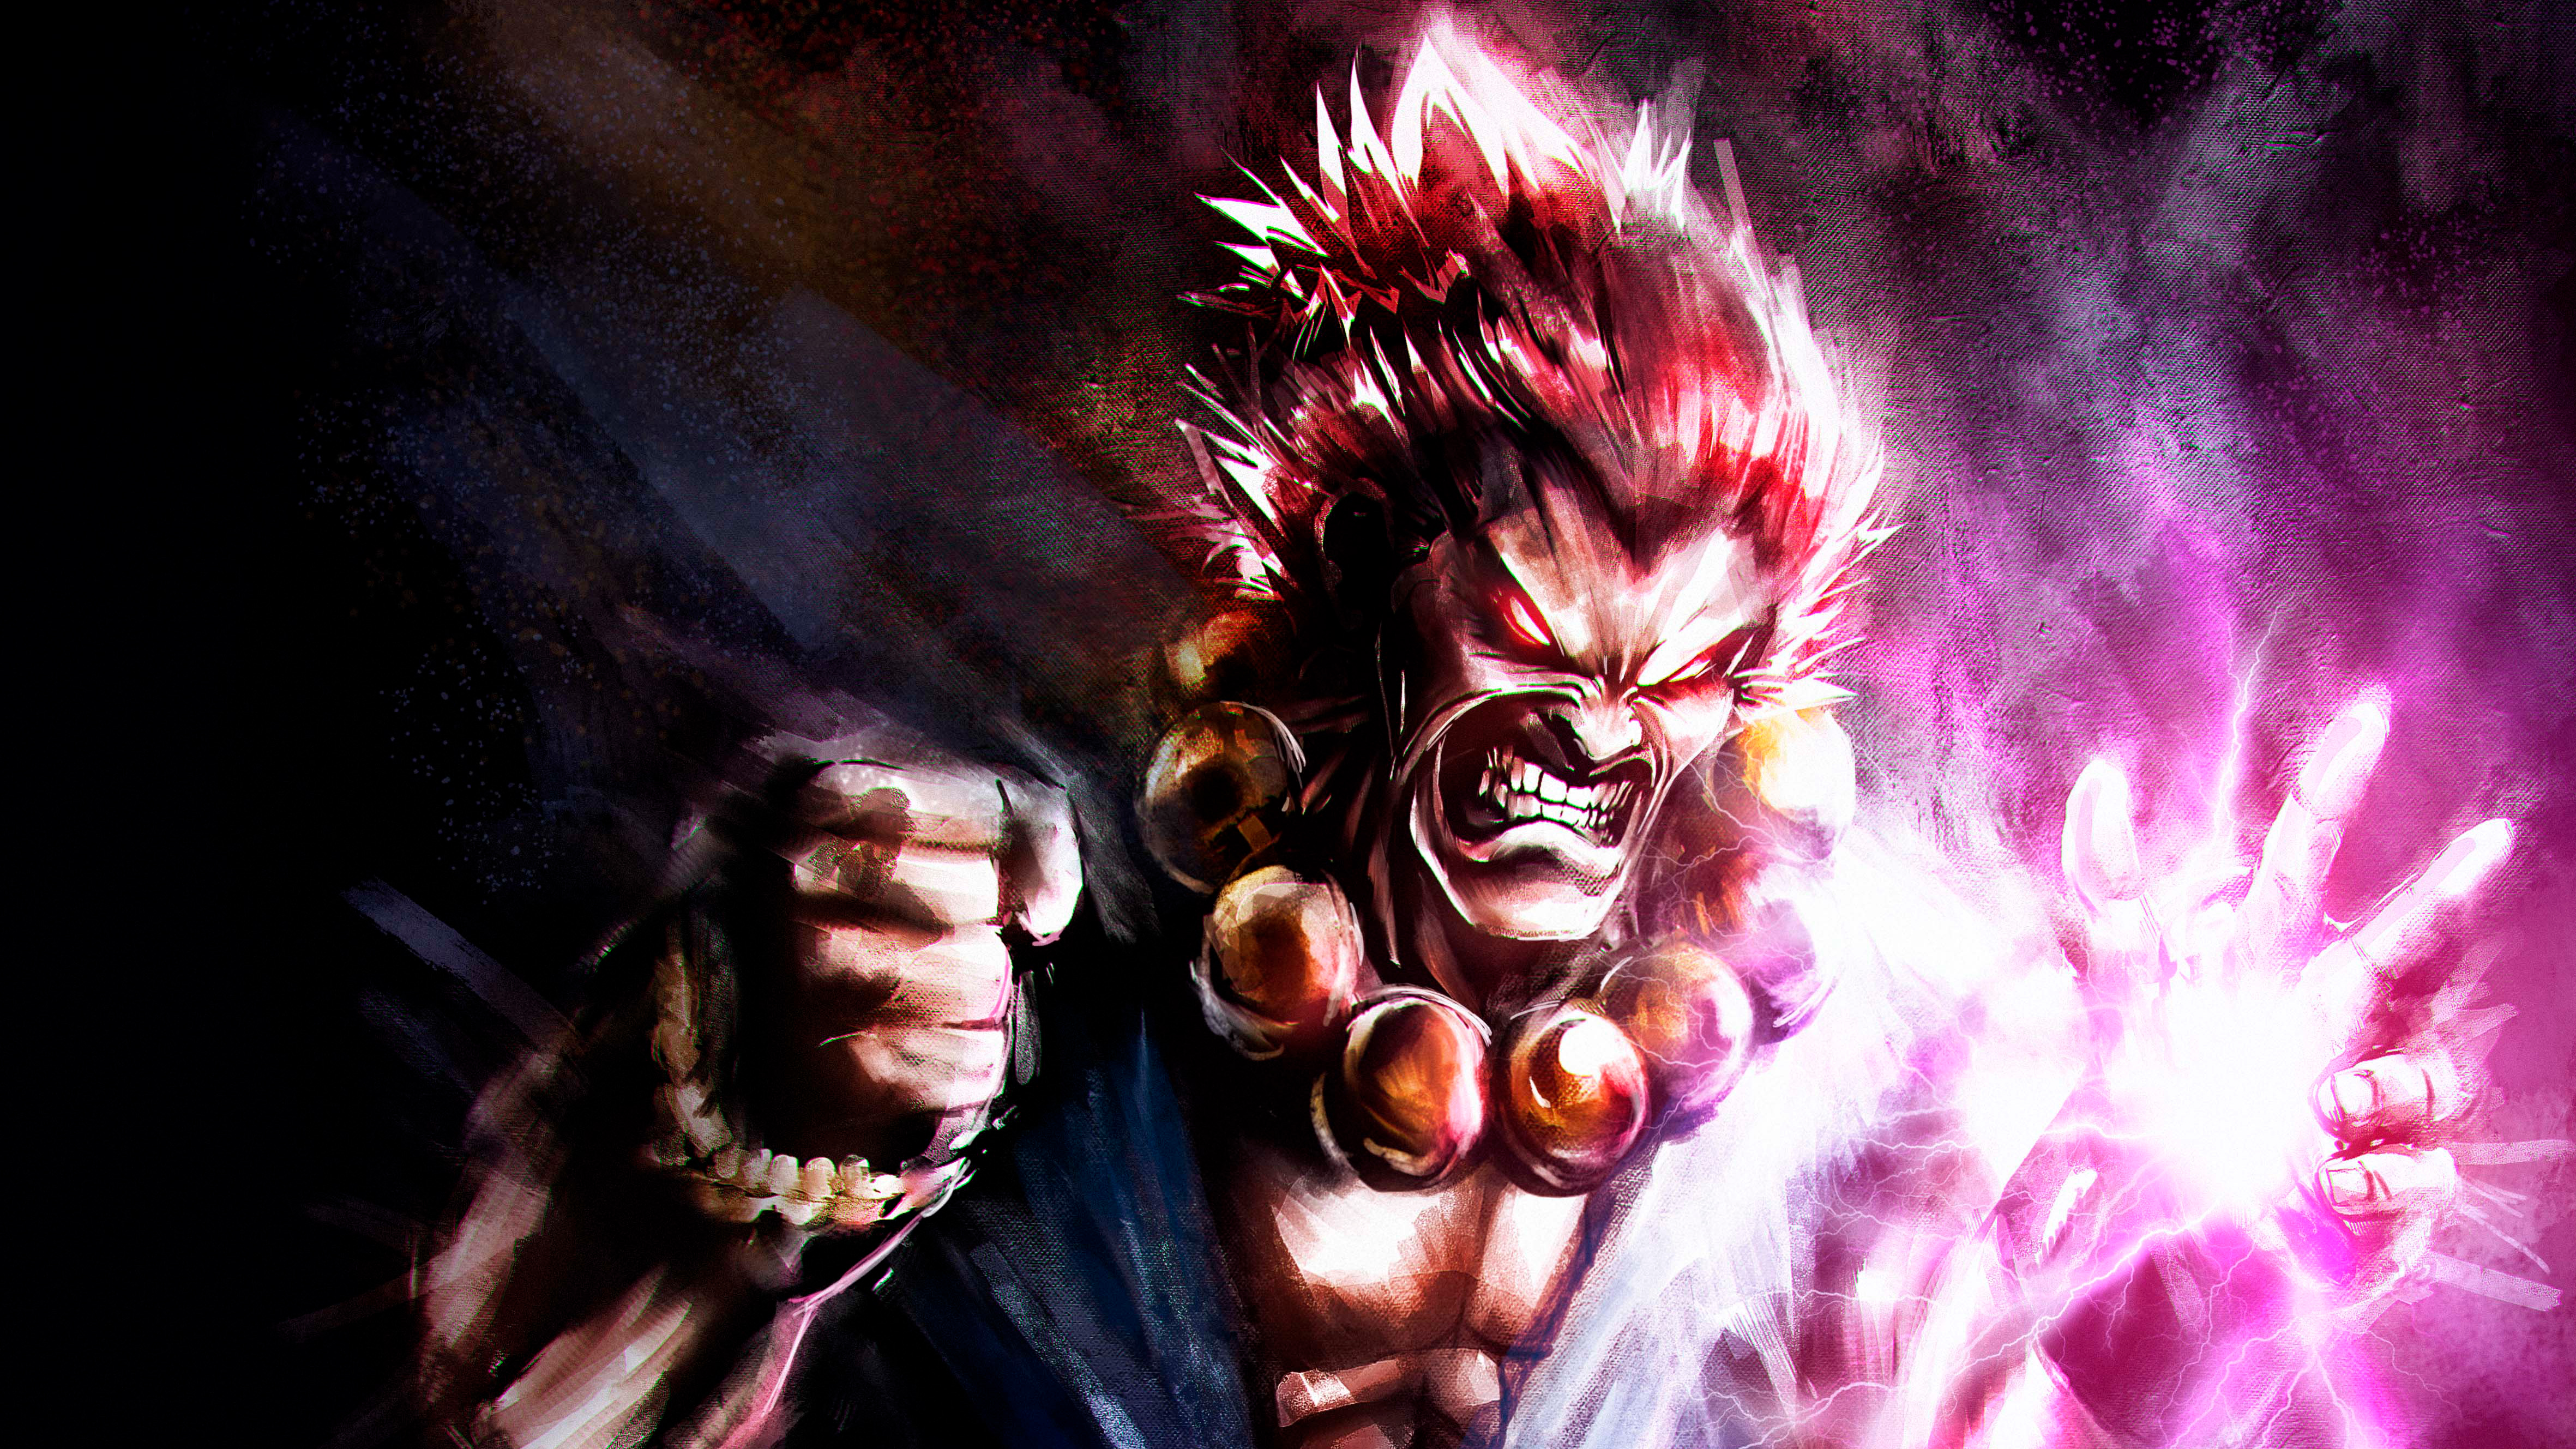 2560x1440 Akuma Street Fighter Game 5k 1440p Resolution Hd 4k